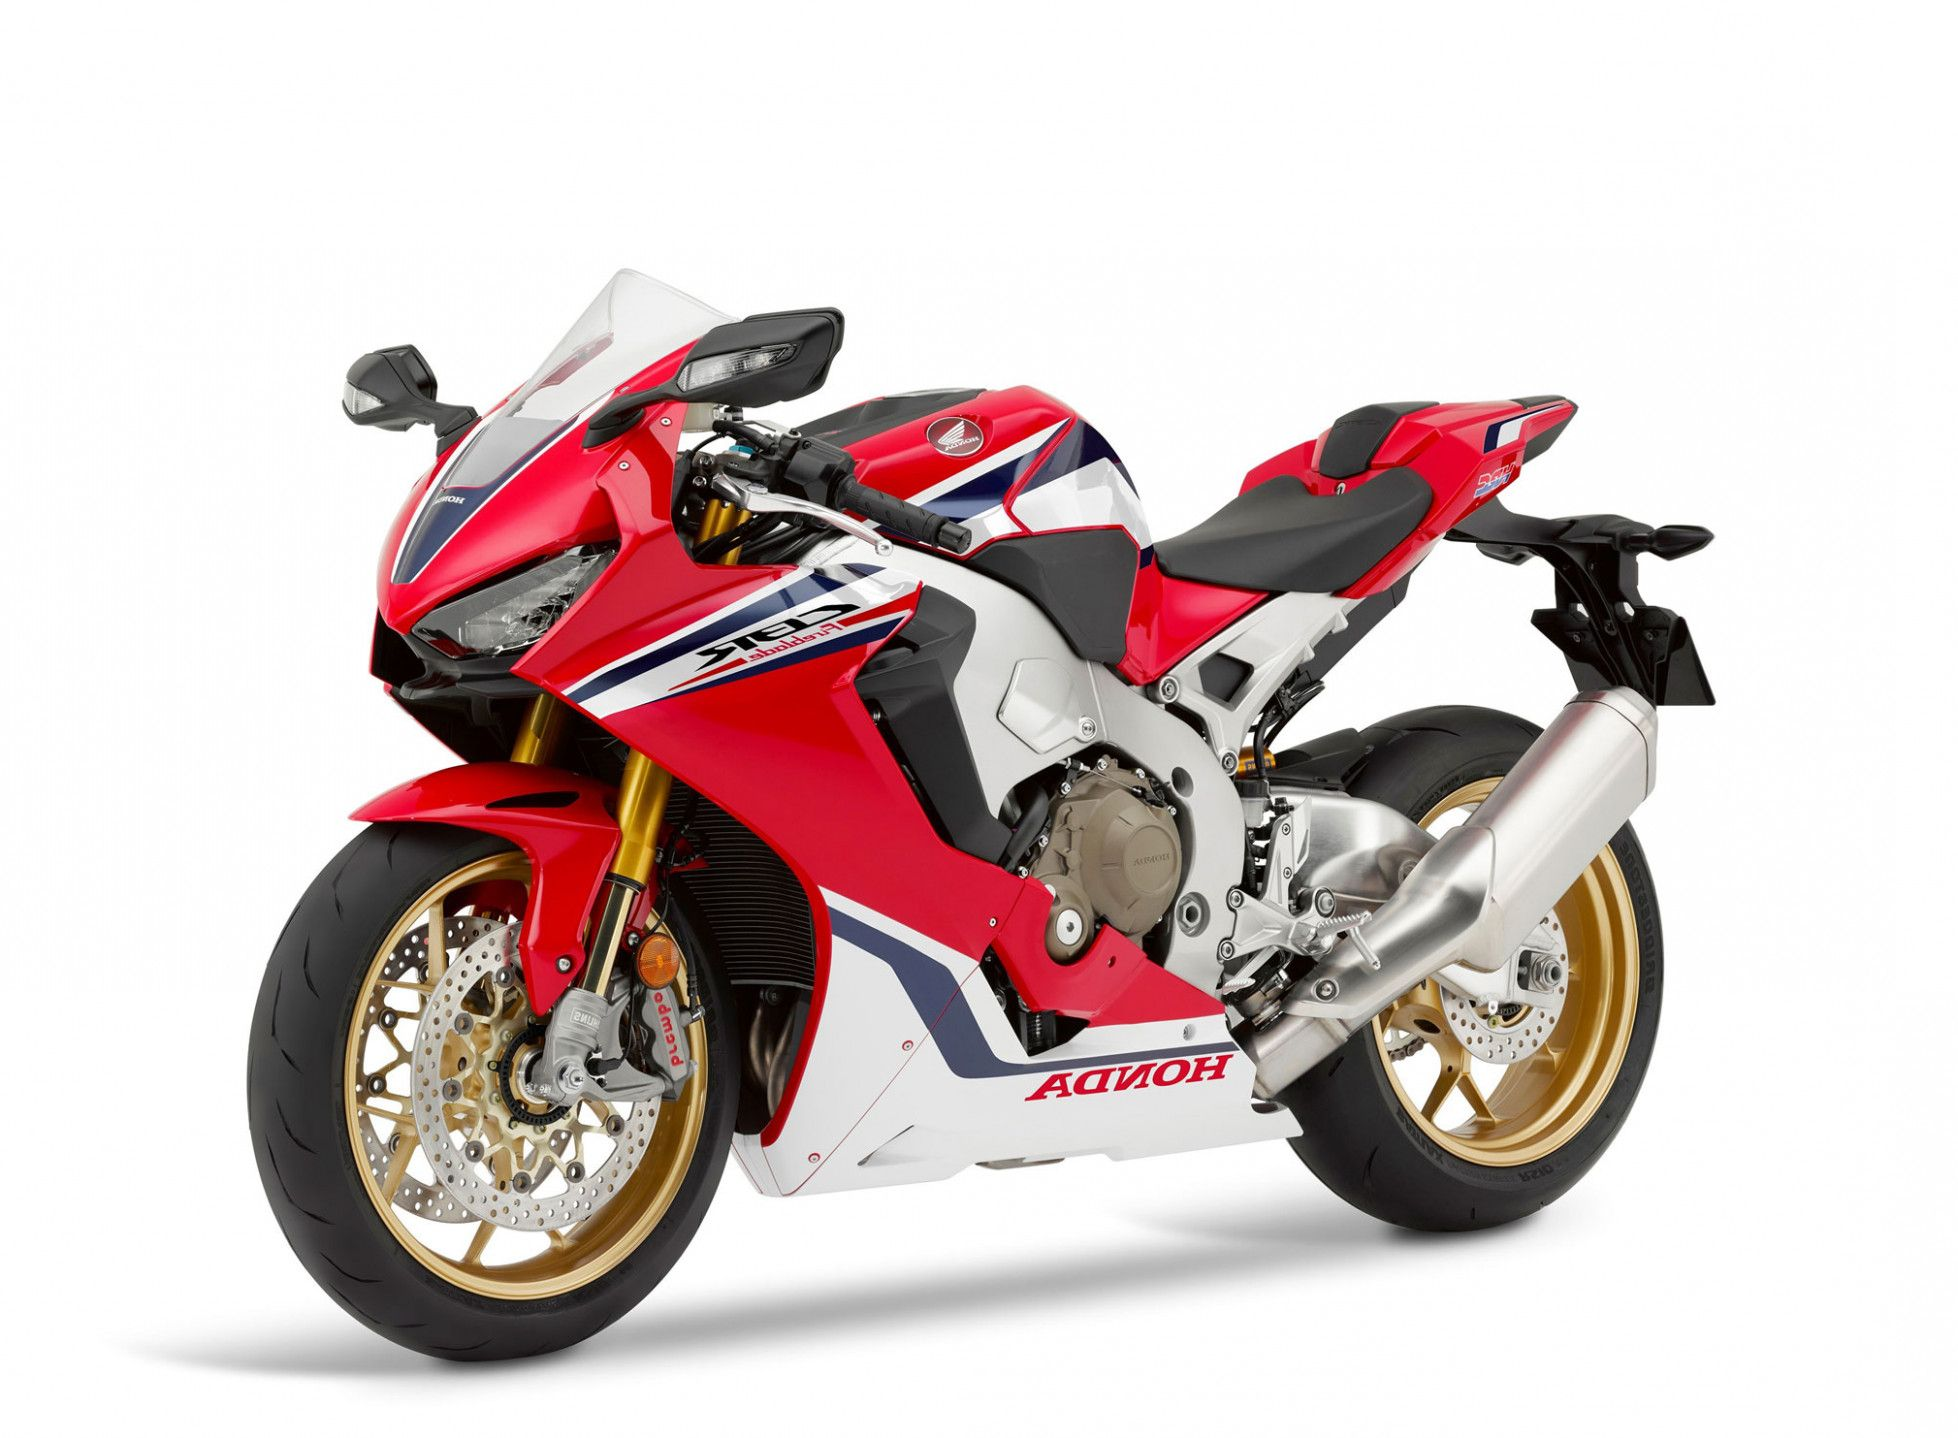 The 5 Secrets That You Shouldnt Know About Honda Fireblade 2020 Honda Fireblade Honda Concept Cars